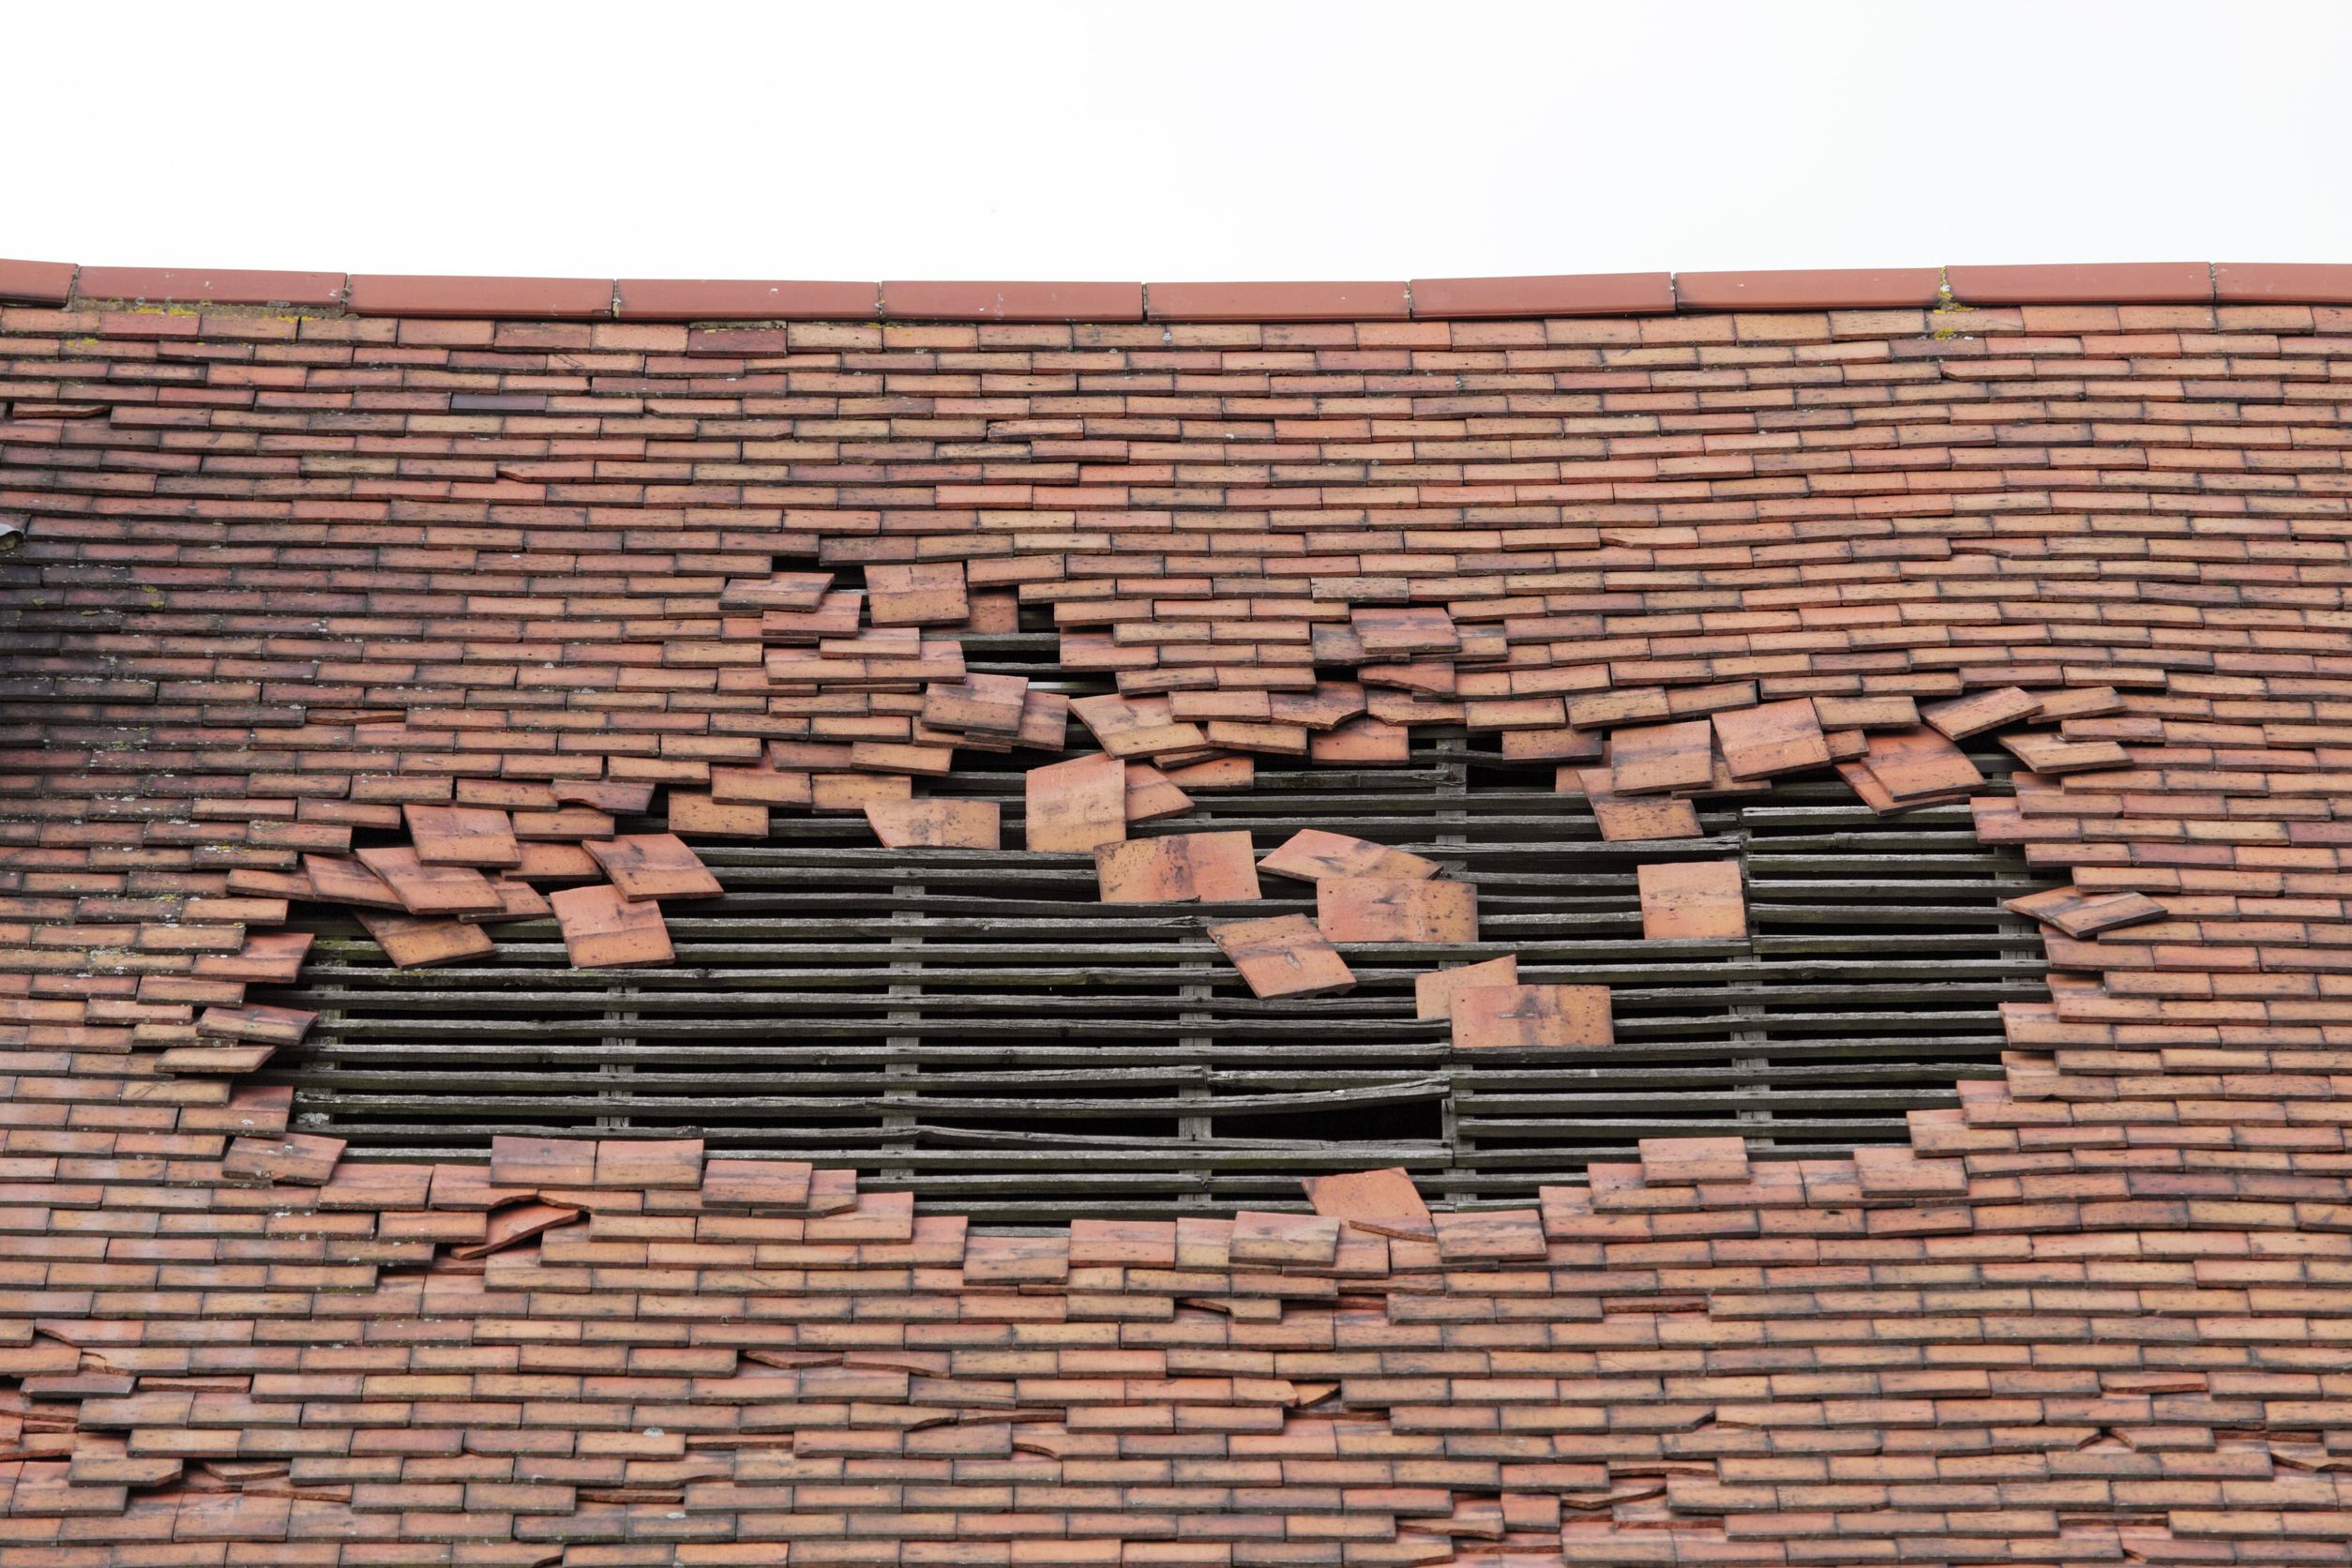 Post Hailstorm Roofing Permits In Kansas Town Return To Normal